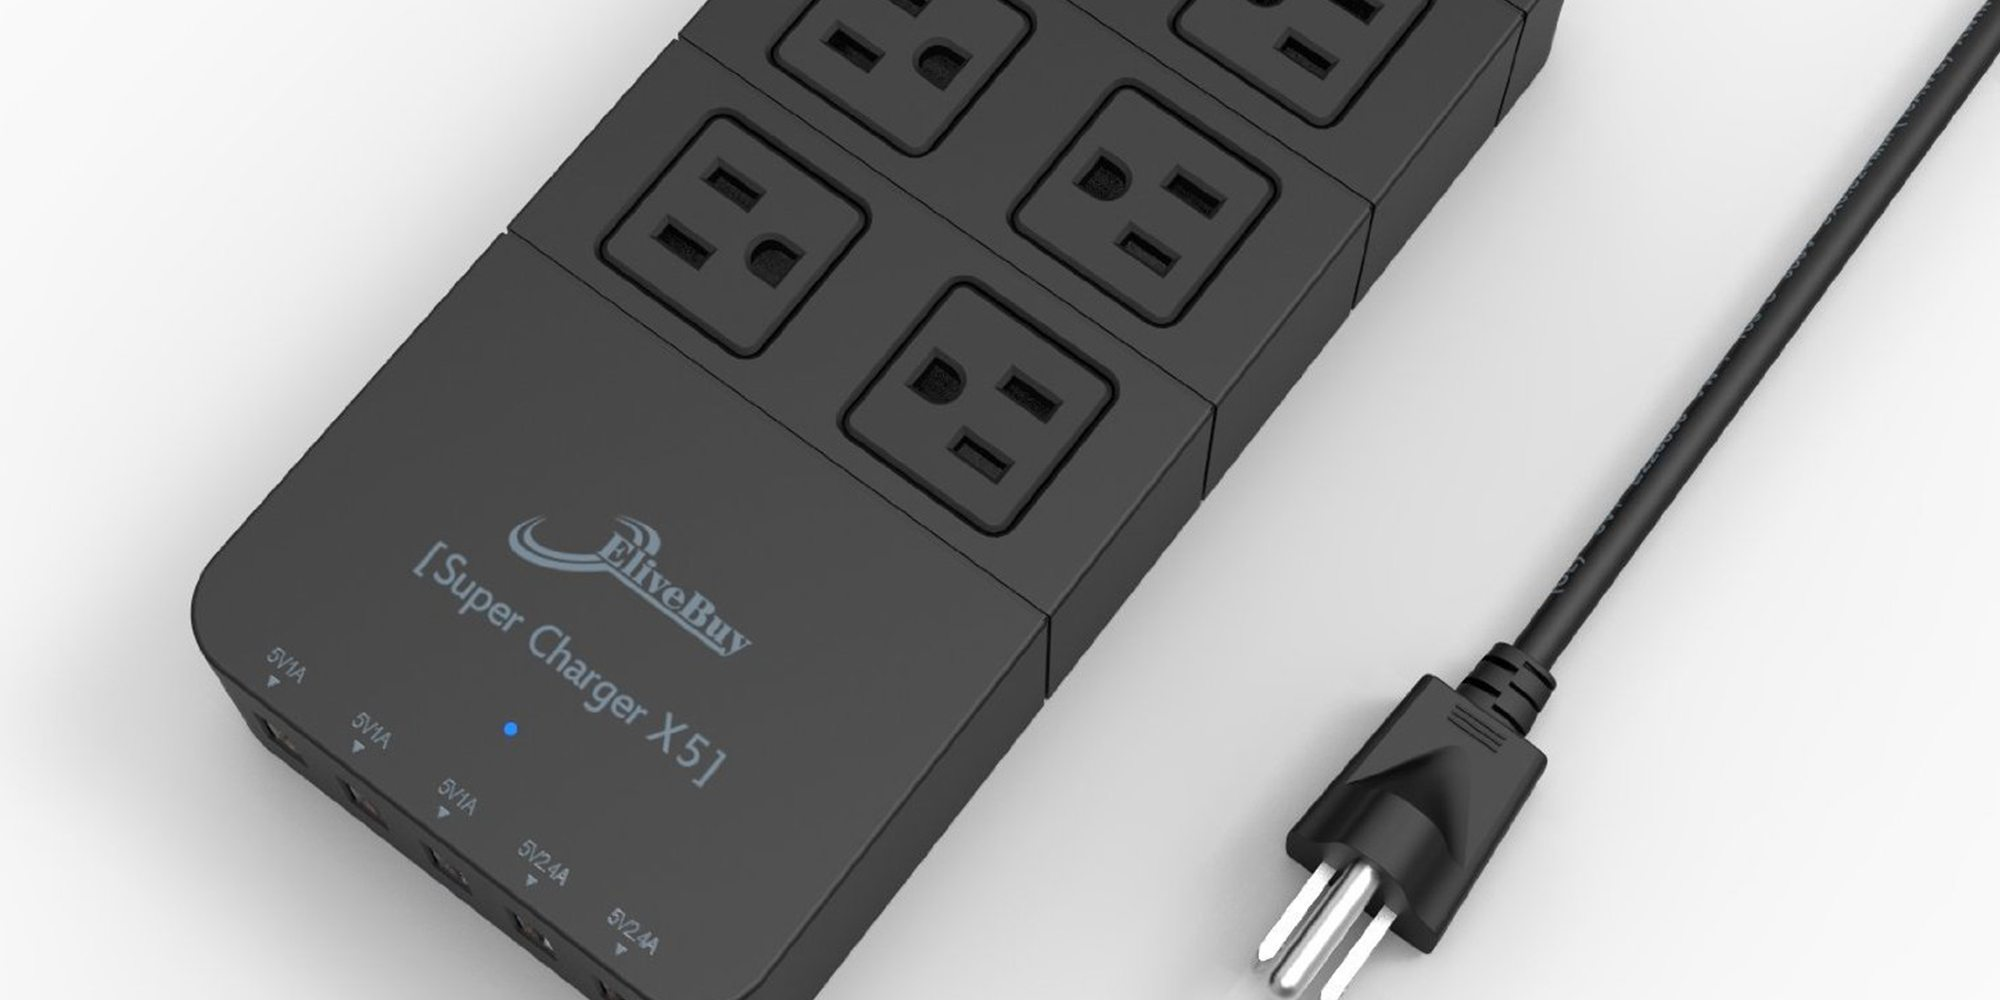 Elivebuy Power Strip Solves All Your Power Needs